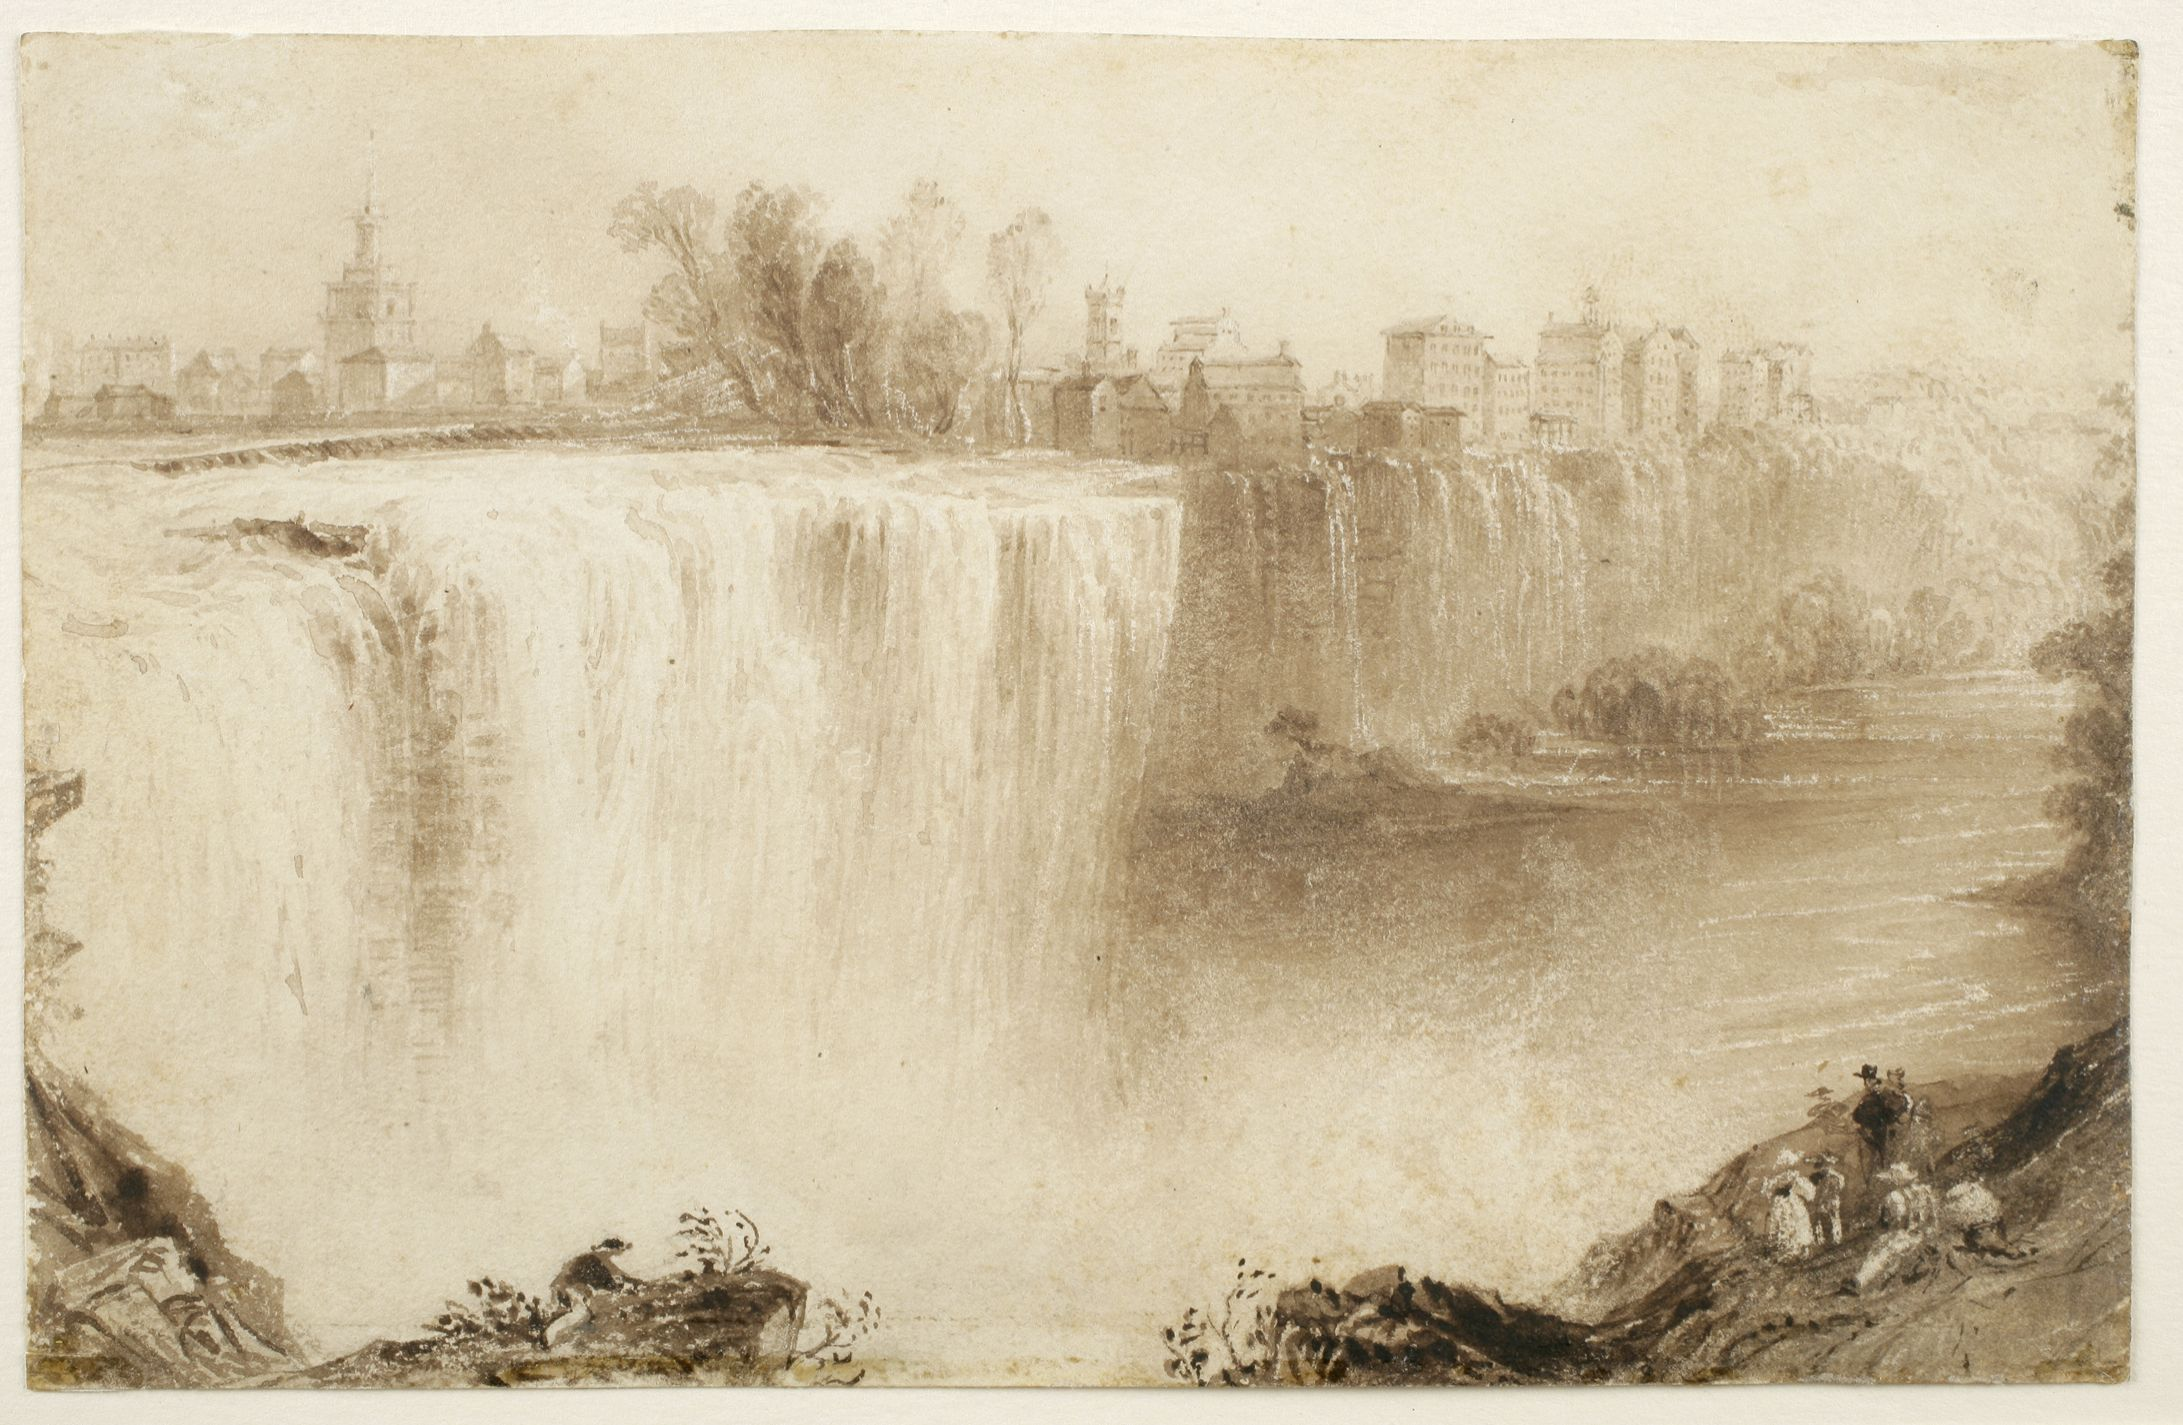 Genesee Falls, Rochester, New York : study for an engraving  | New